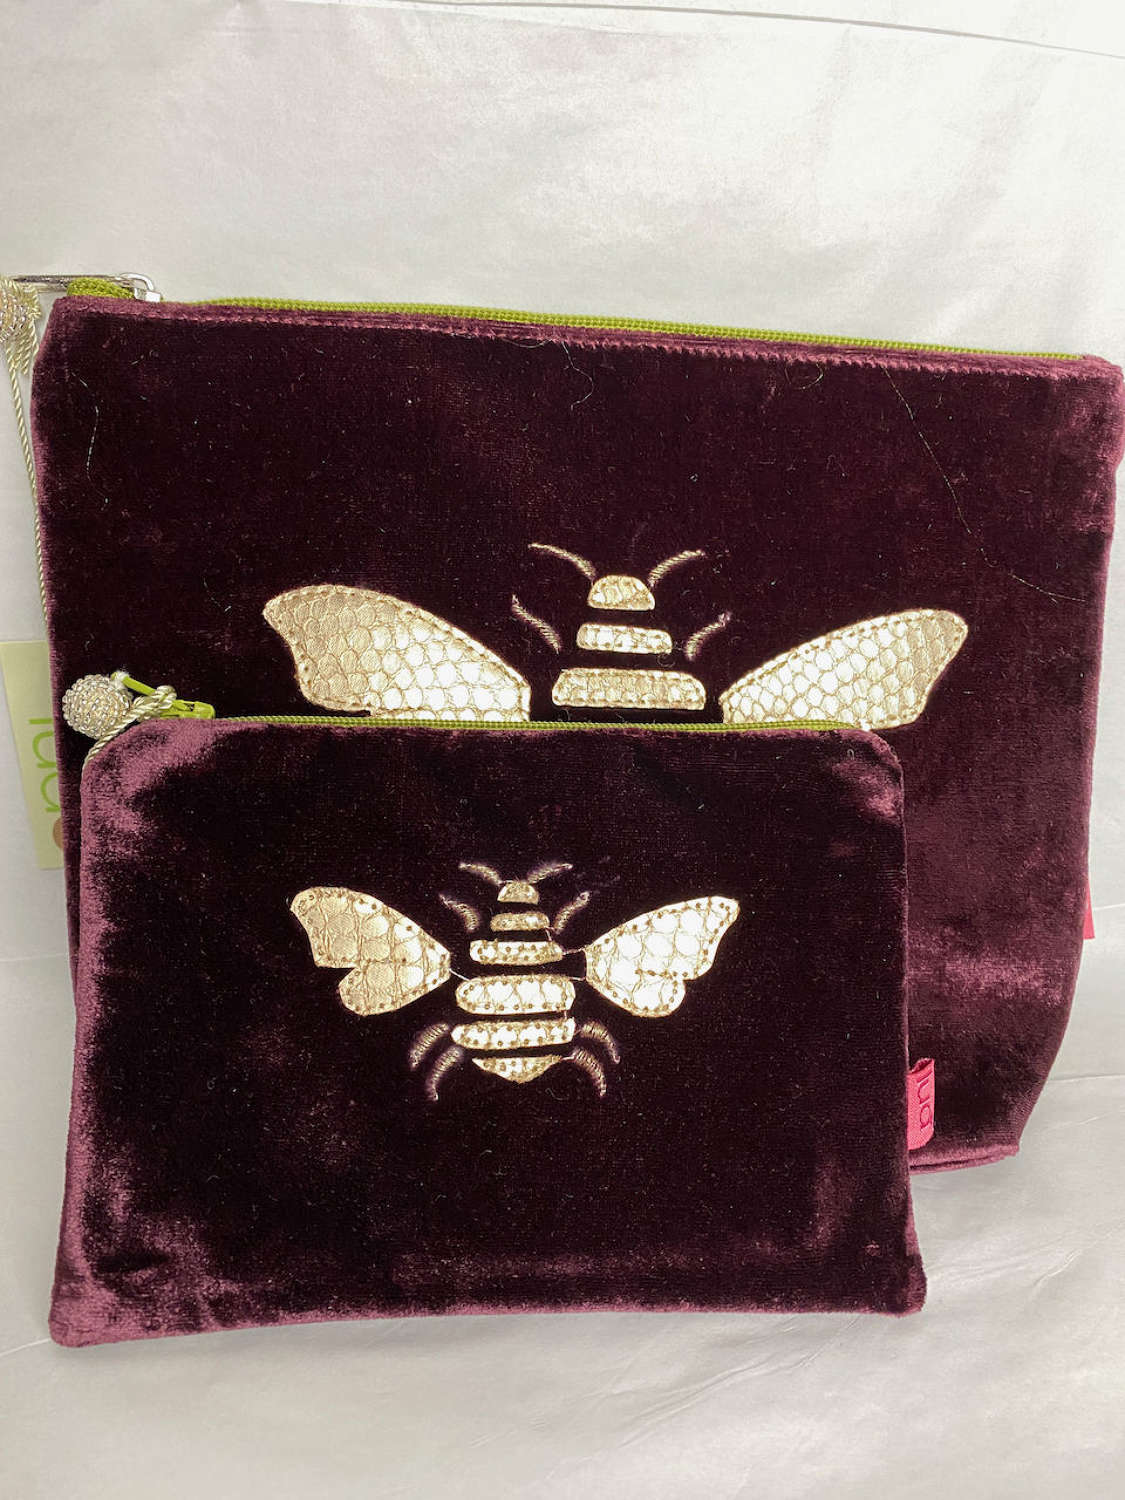 Burgundy velvet bags and purses with gold bee